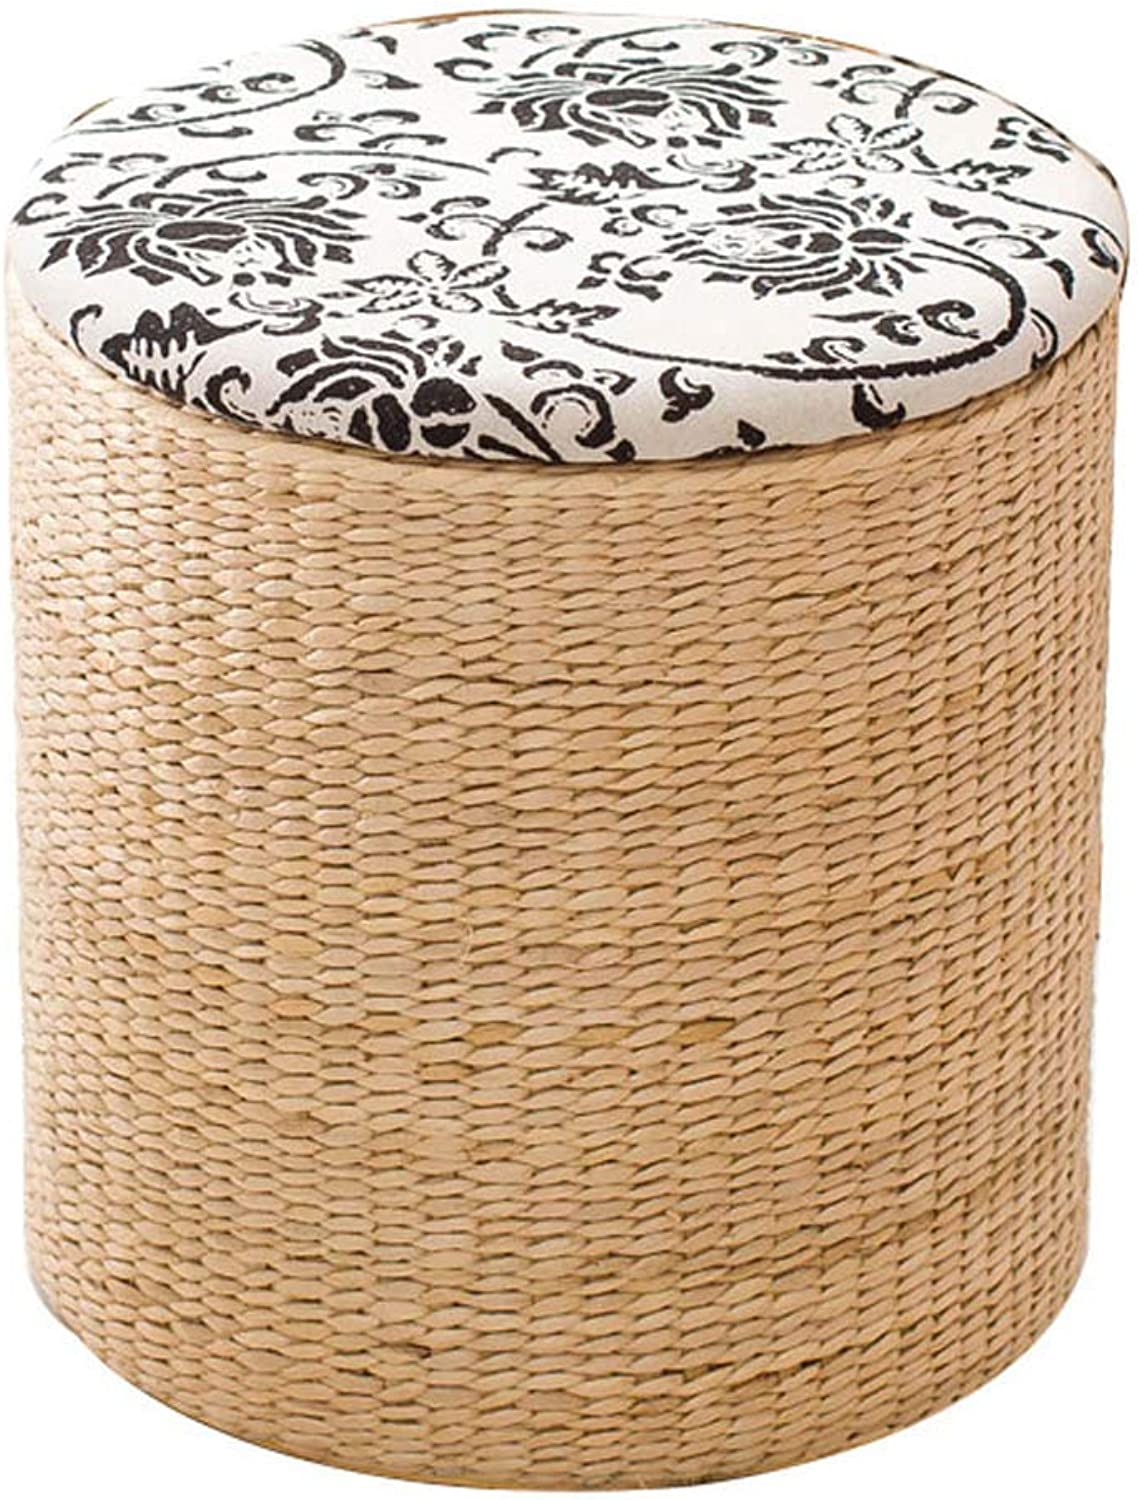 Household Footstool Round Storage Stool, Straw-Changing shoes Stool Solid Wood Dining Stool, Suitable for Living Room, Bedroom, Dining Room